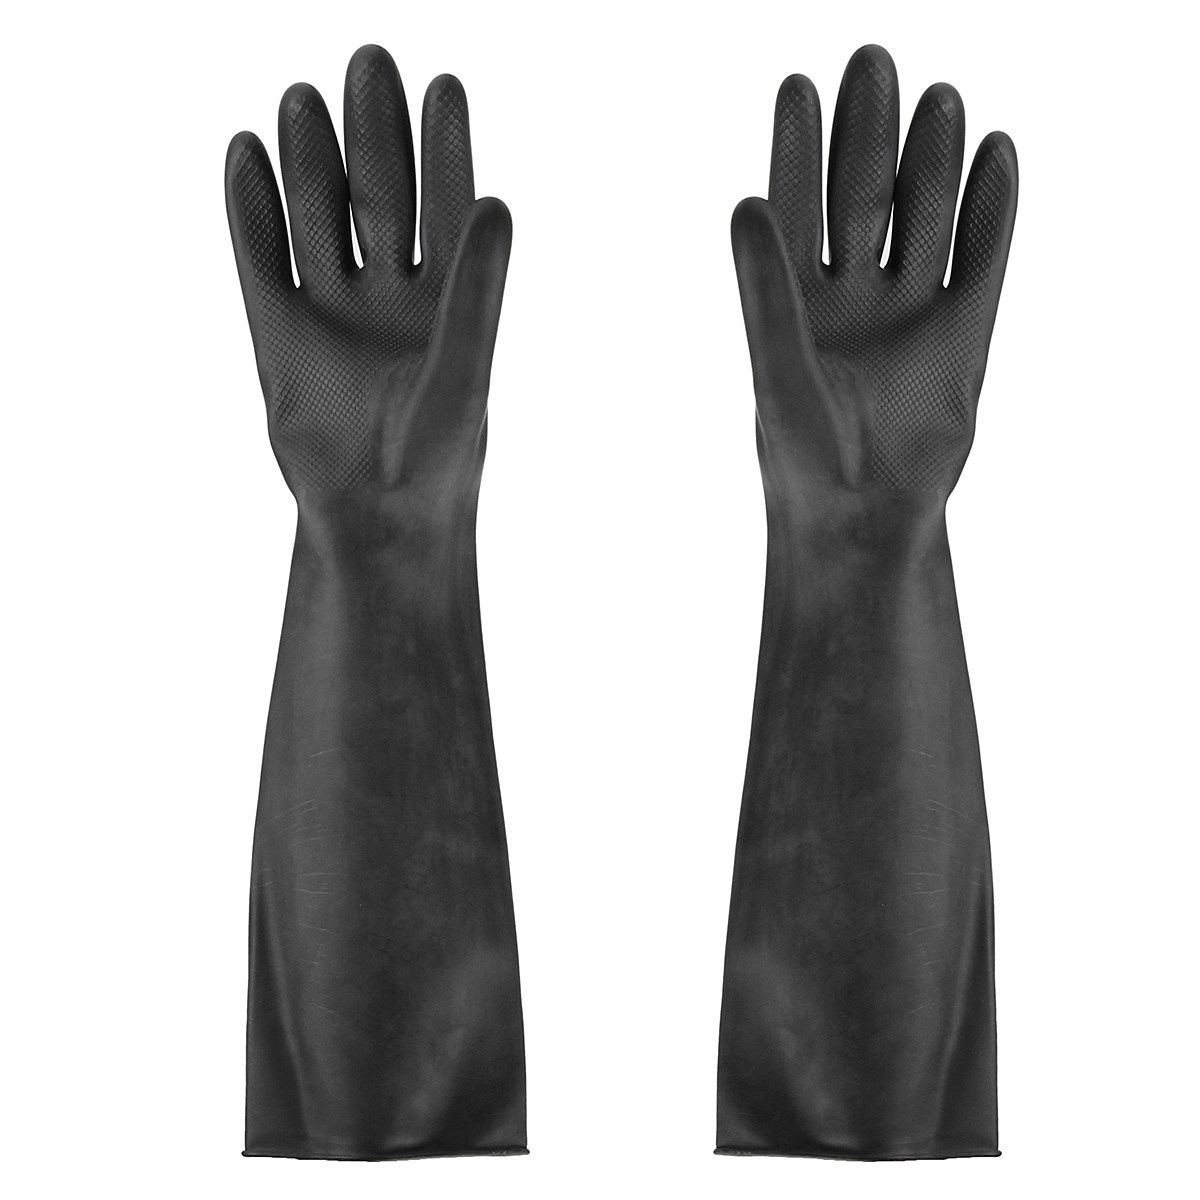 NEW Elbow-Long Industry Anti Acid Alkali Chemical Resistant Rubber Work Gloves Safety Glove